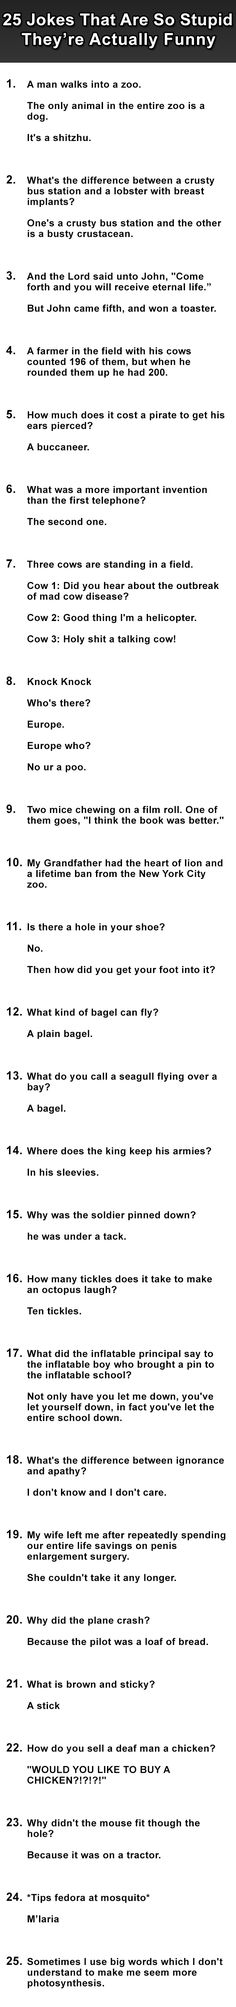 25 jokes so stupid they're actually funny